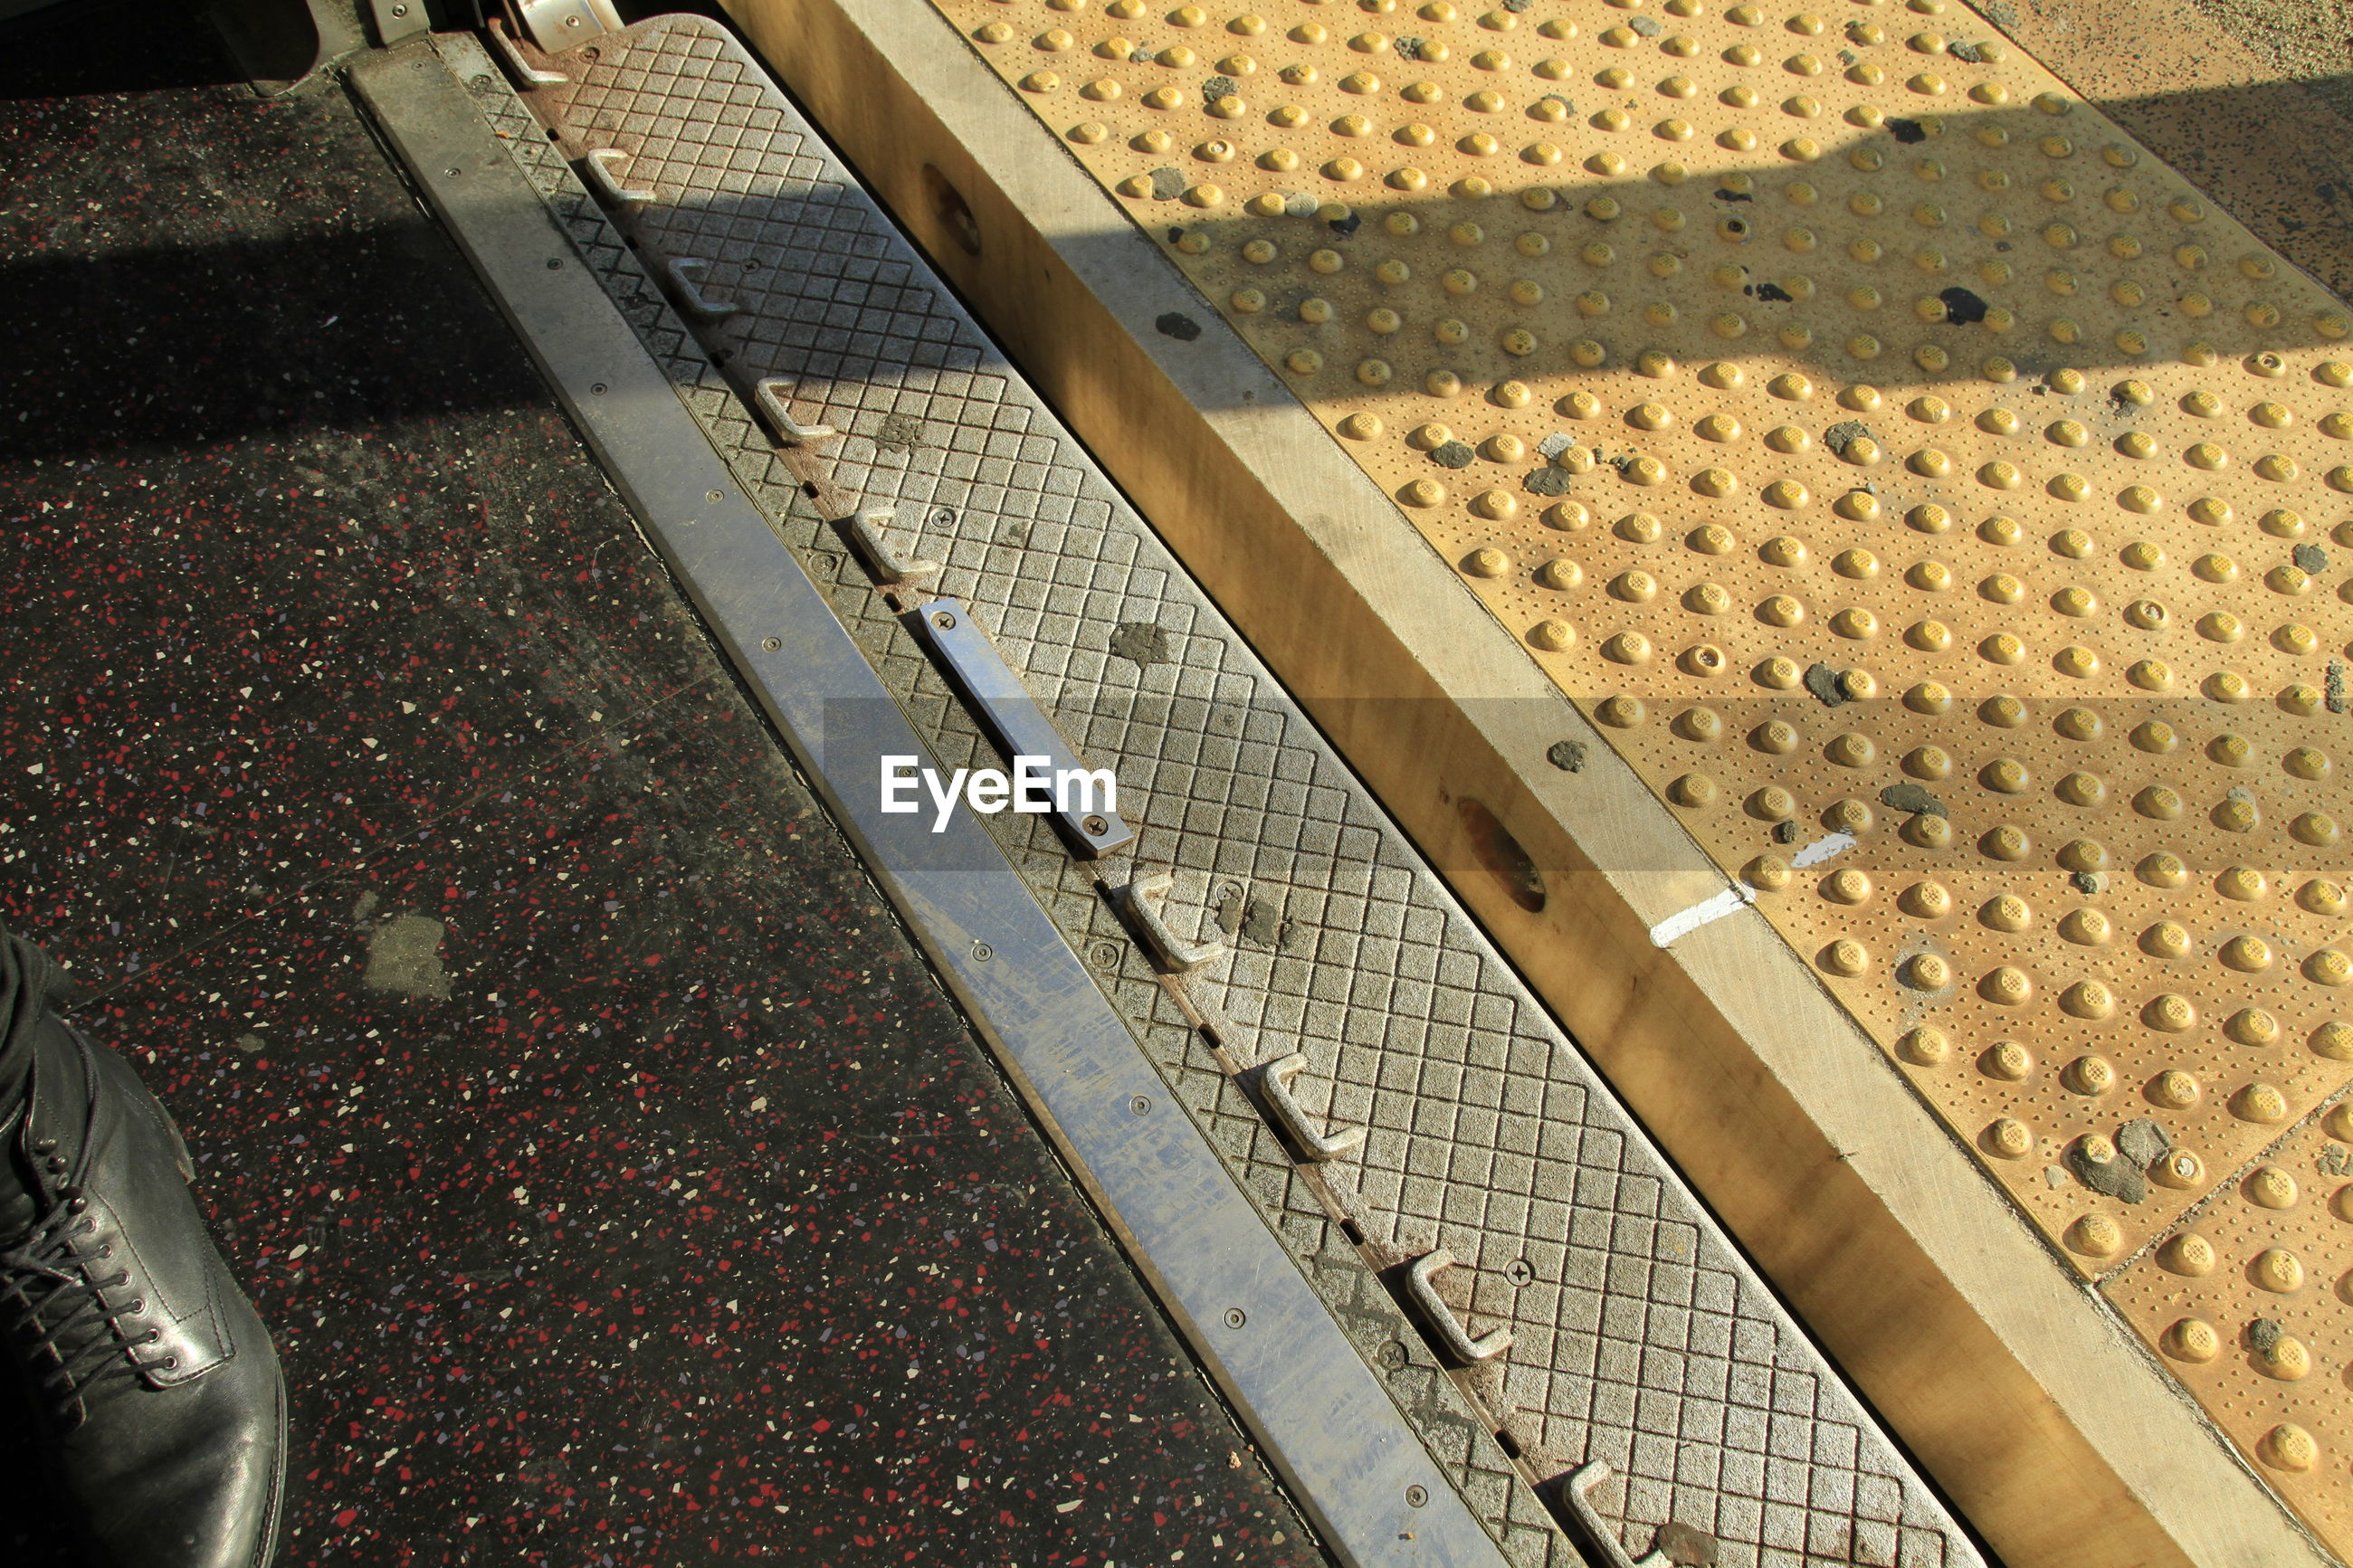 HIGH ANGLE VIEW OF ESCALATOR BY RAILROAD TRACKS